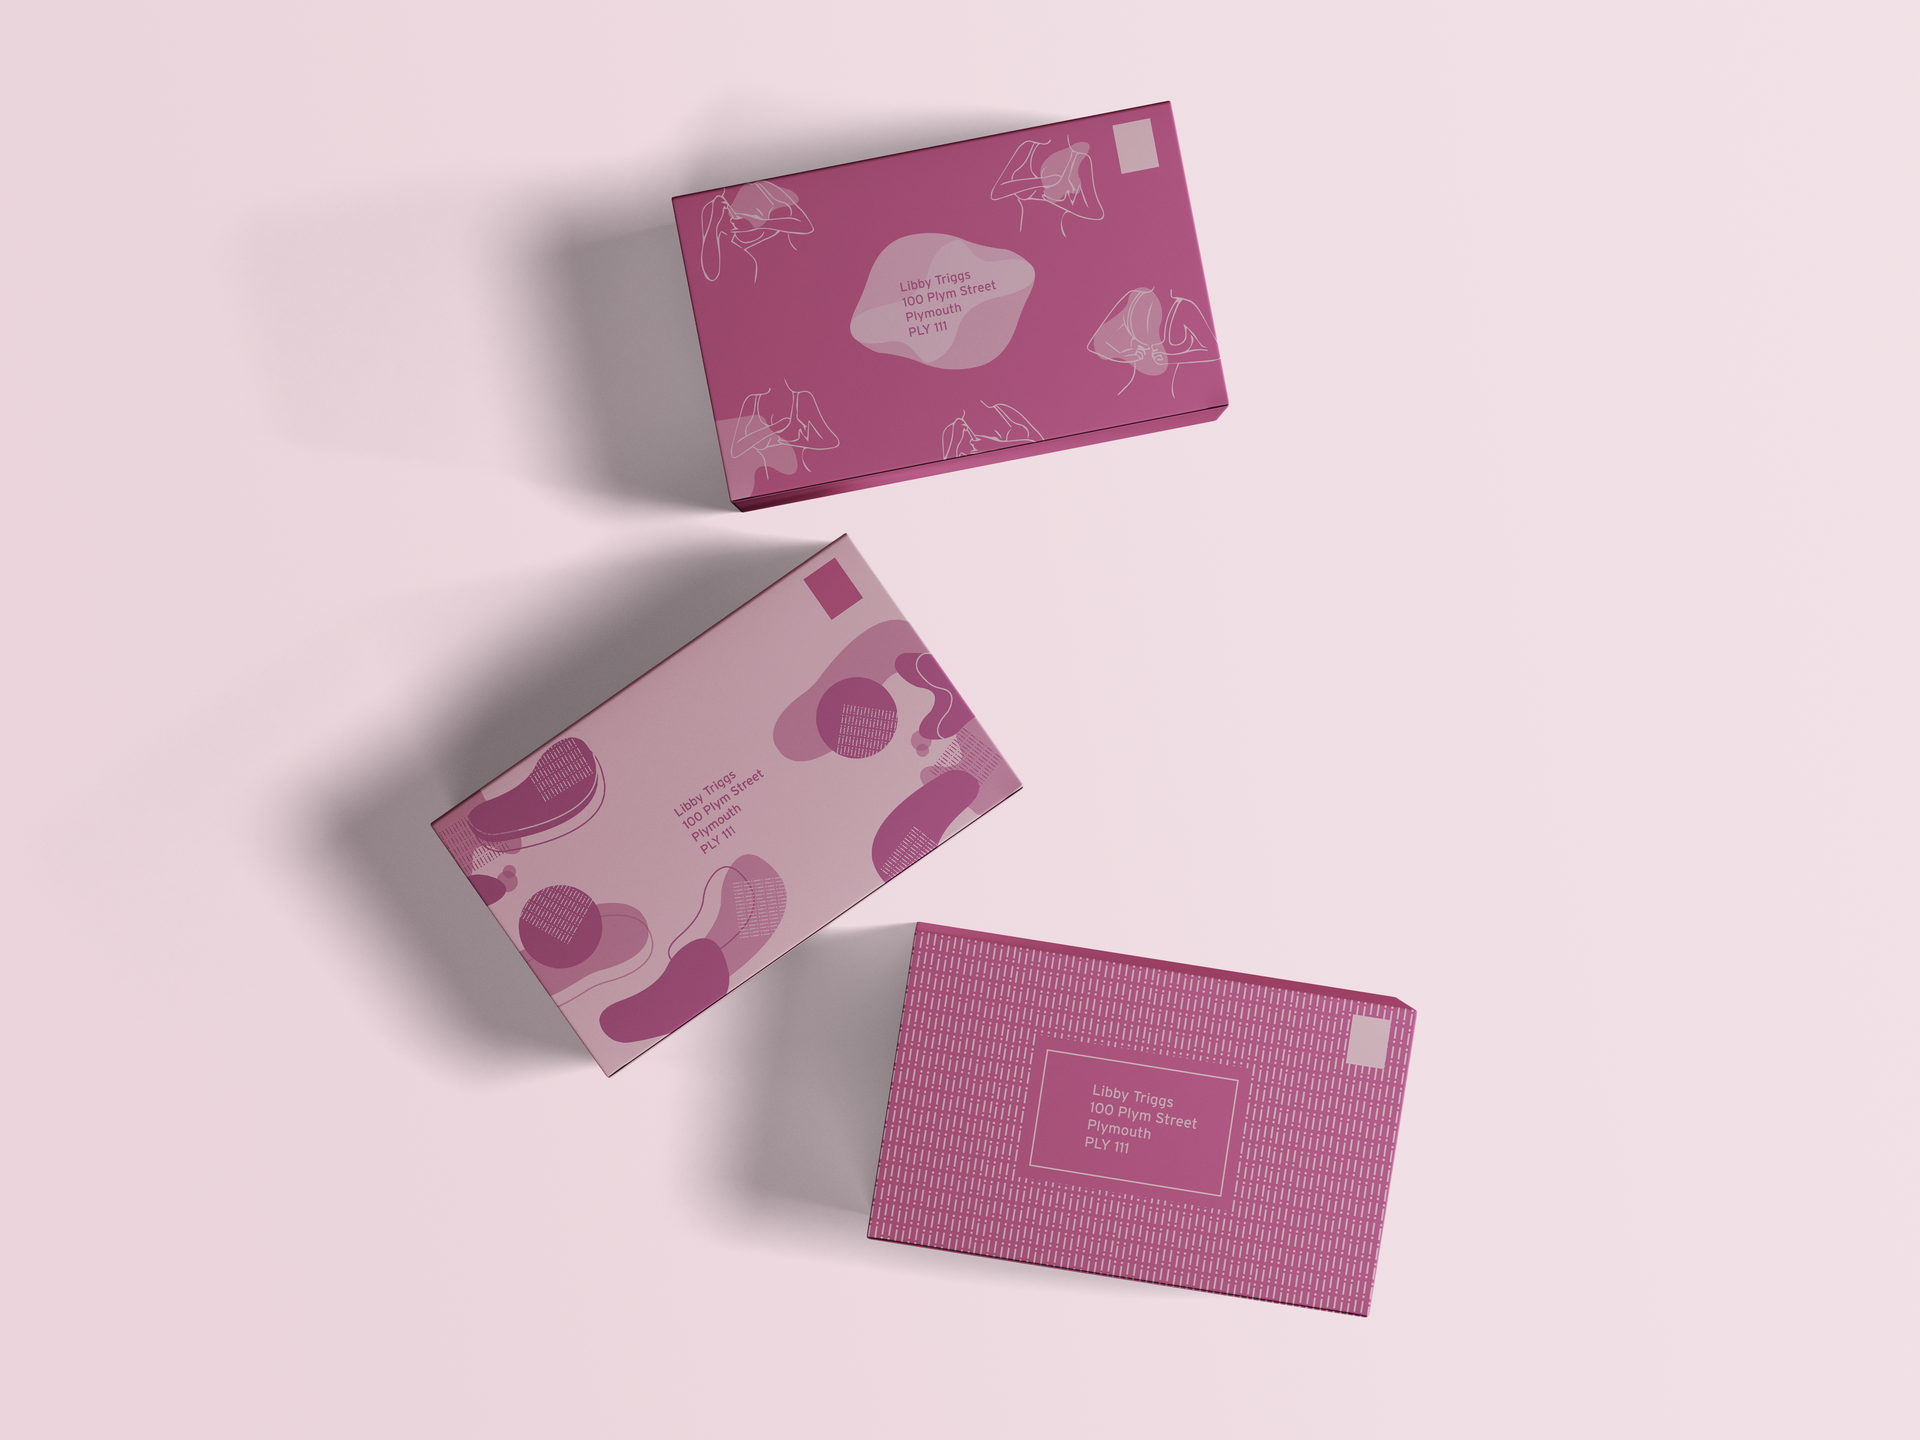 Top View Box Packages Mockup.png